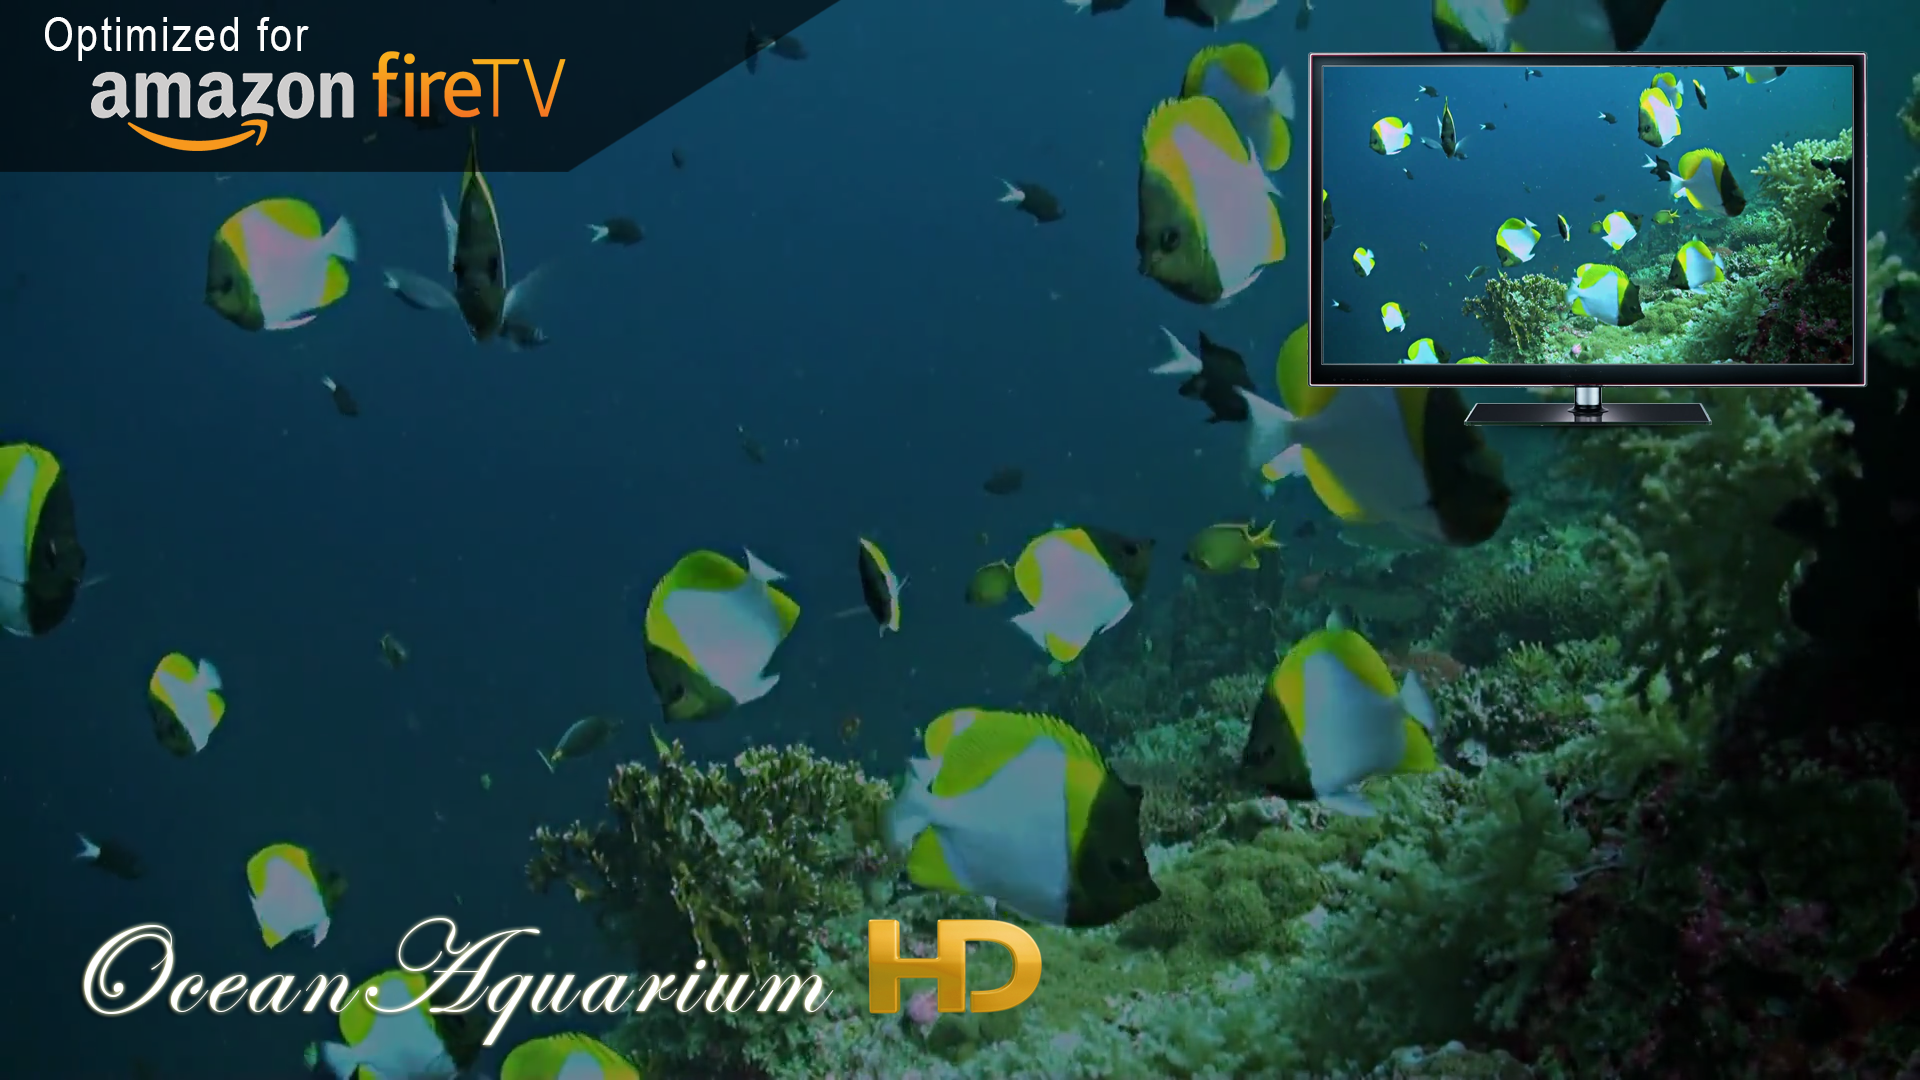 Amazon Com Beach Hd Wallpapers Appstore For Android: Amazon.com: Ocean Aquarium HD: Appstore For Android